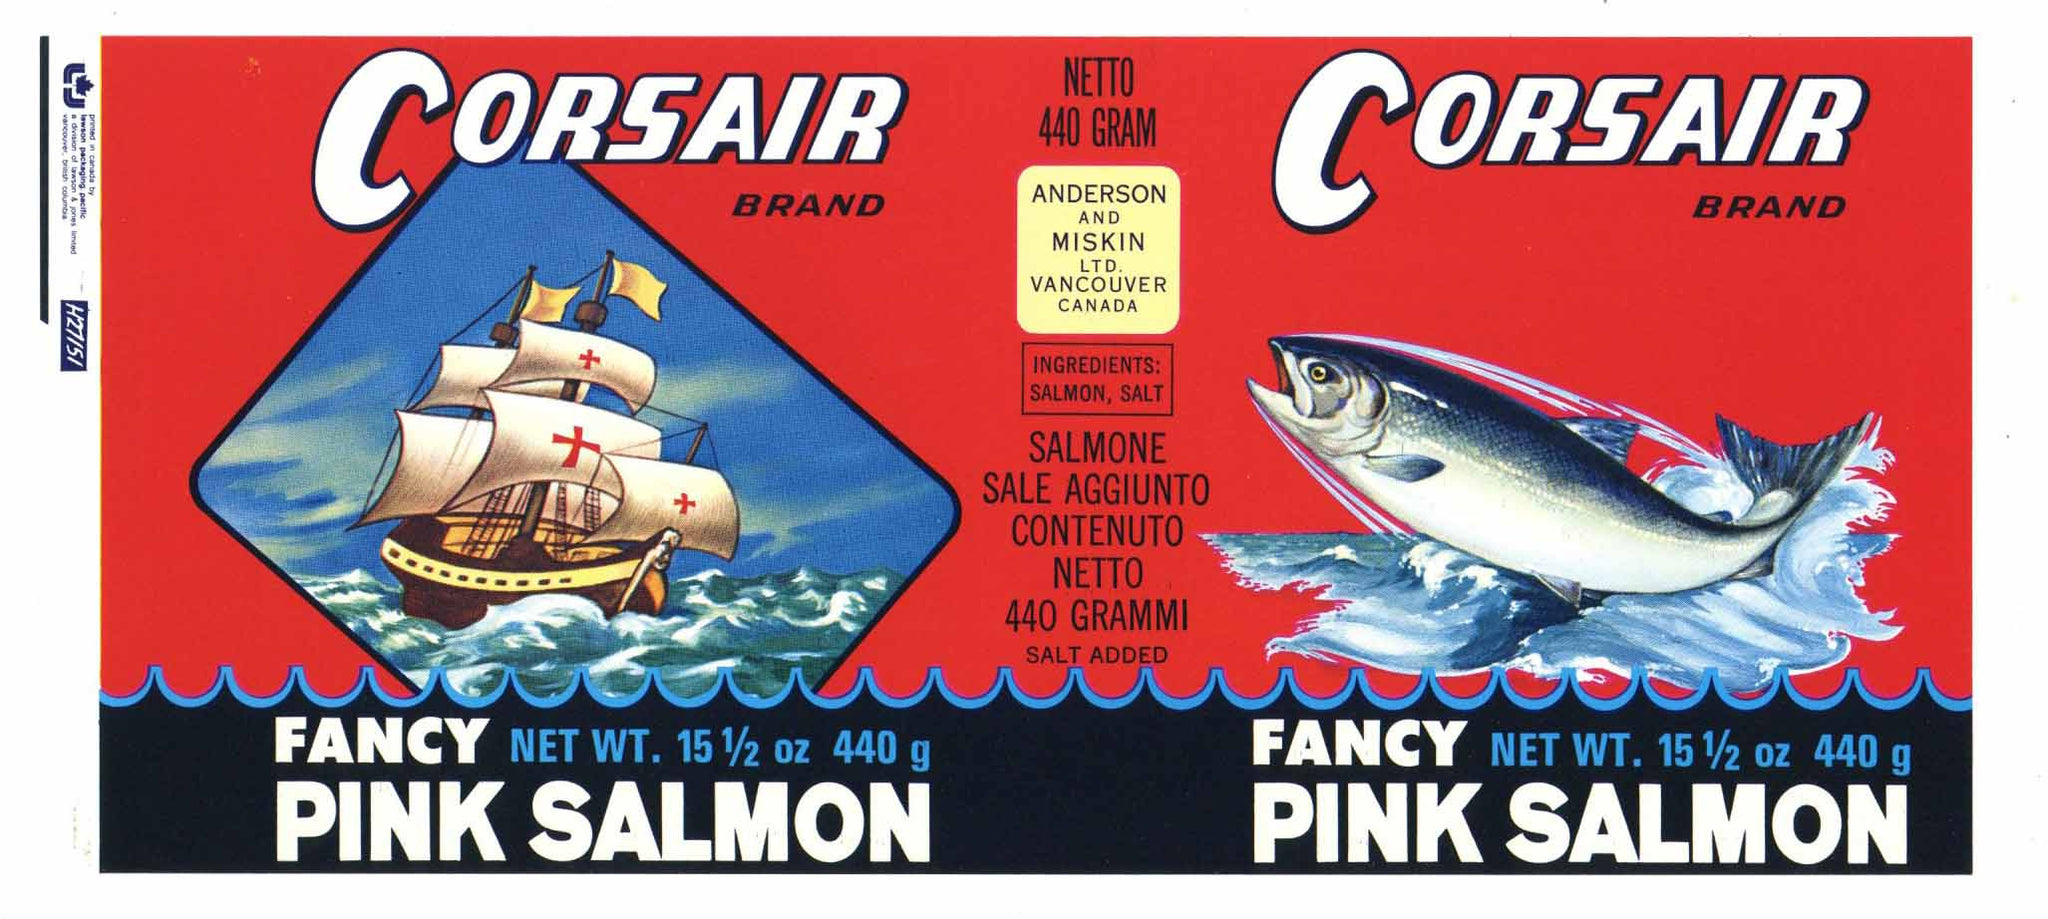 Corsair Brand Vintage Canadian Salmon Can Label